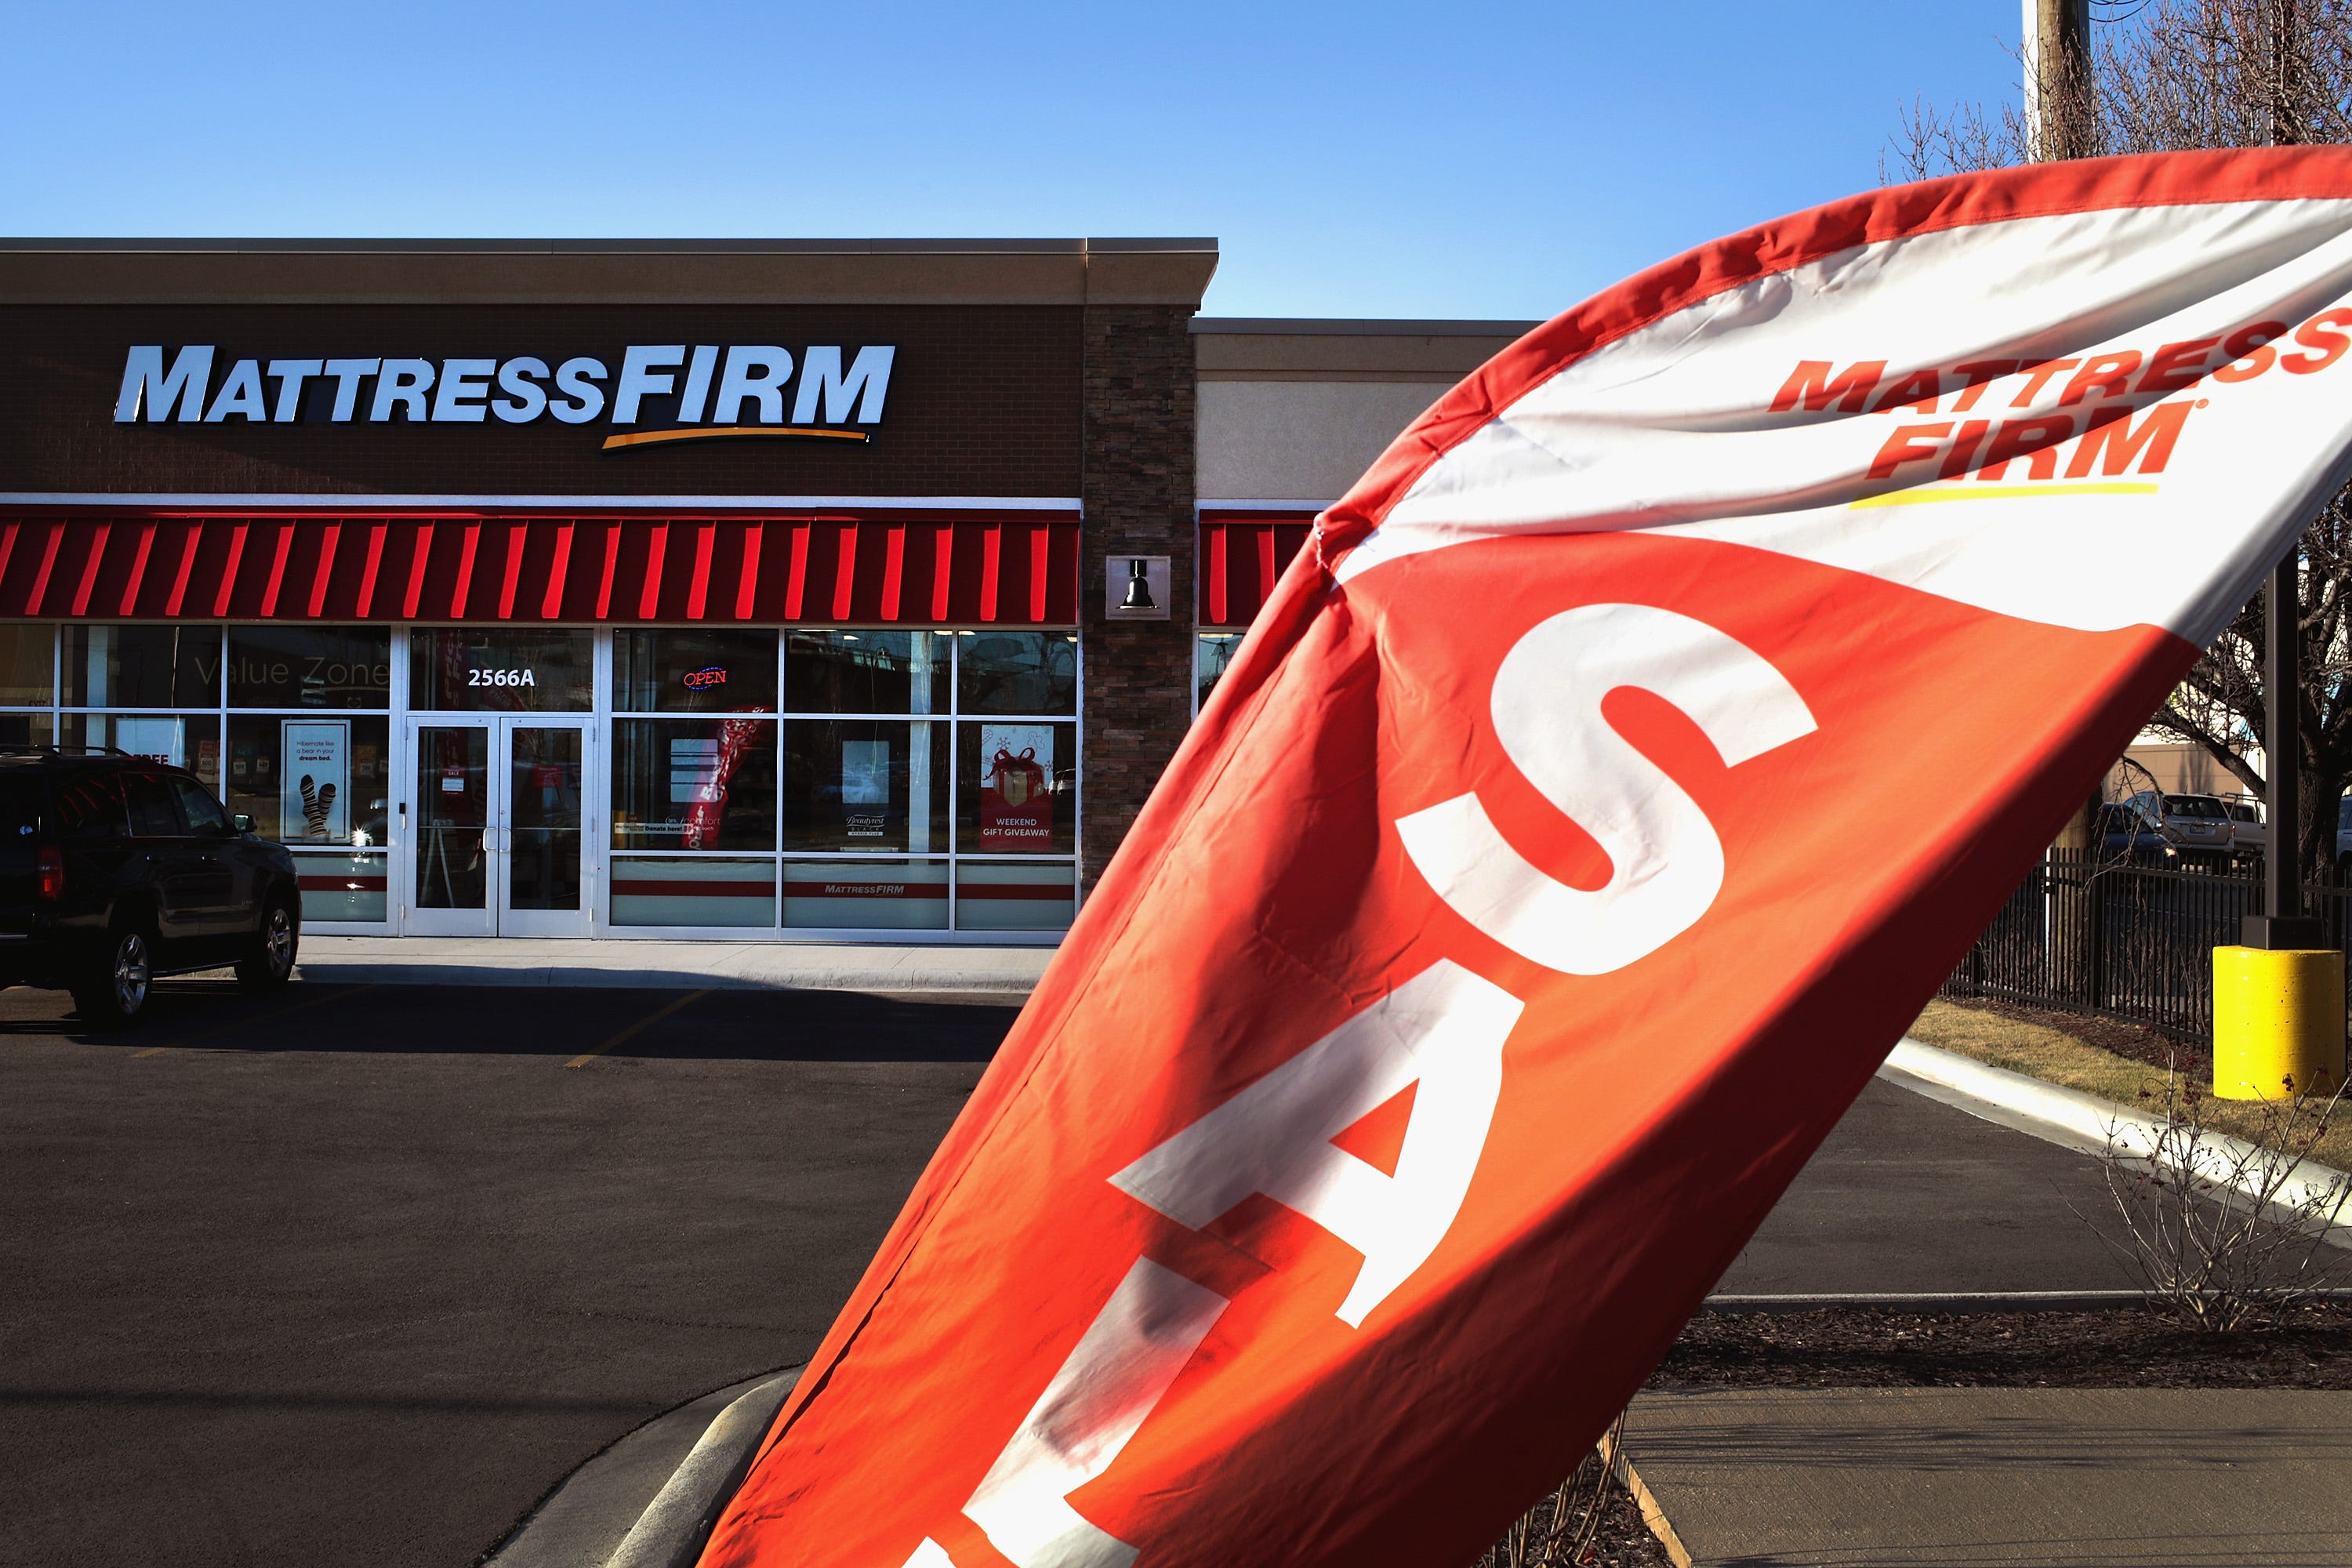 Mattress Firm Chapter 11 bankruptcy: Tempur Sealy stock price is down recommendations